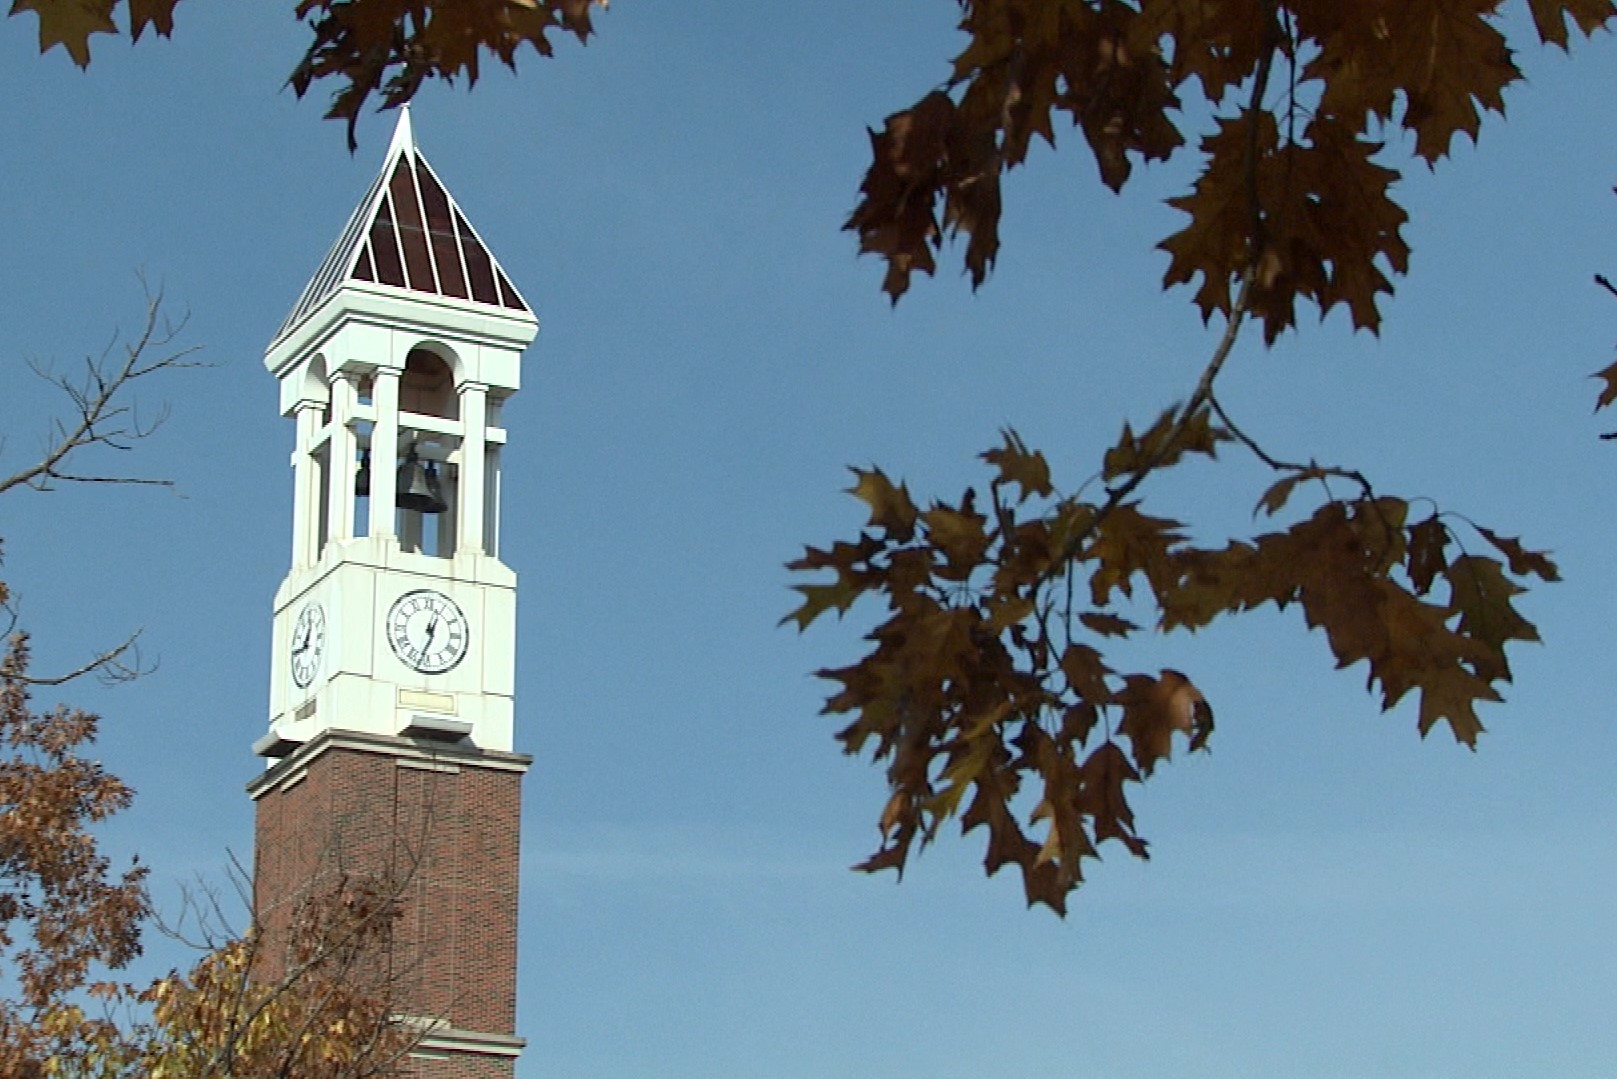 The Purdue clock tower.